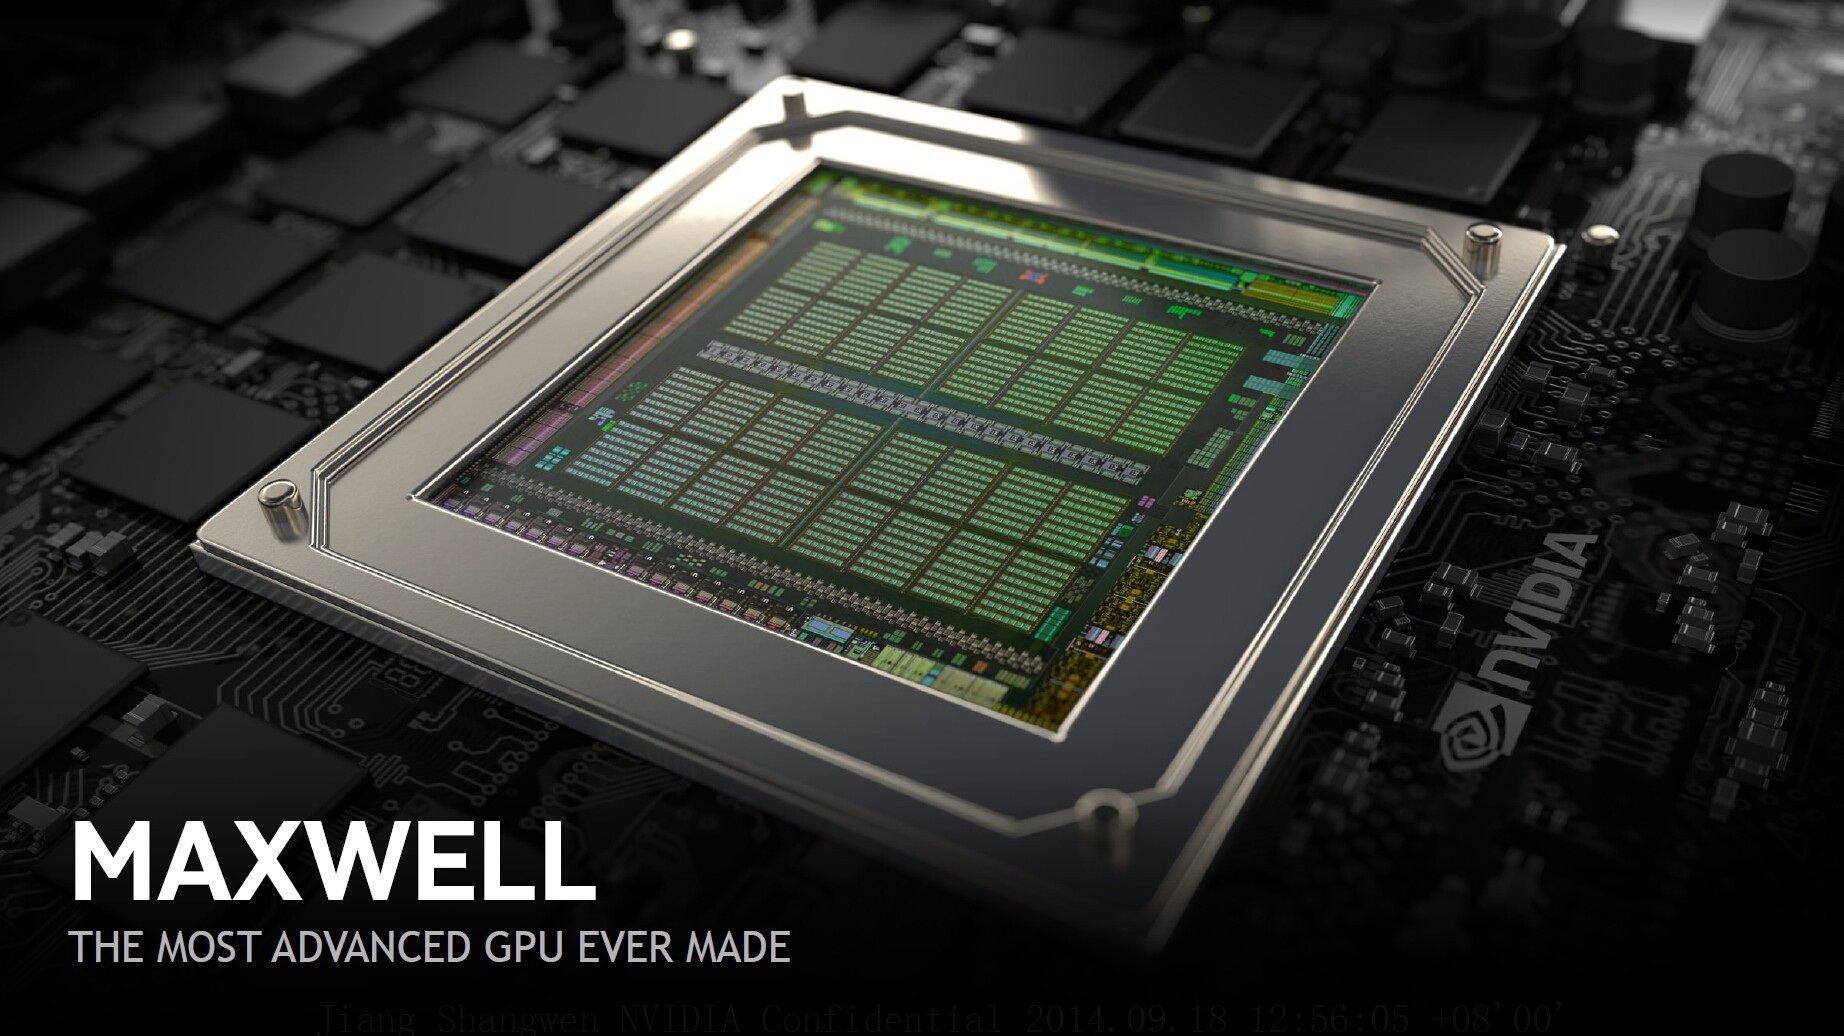 Tesla Update >> NVIDIA GM200 Based Quadro M6000 Possible Specifications Revealed - Features 3072 CUDA Cores, 12 ...